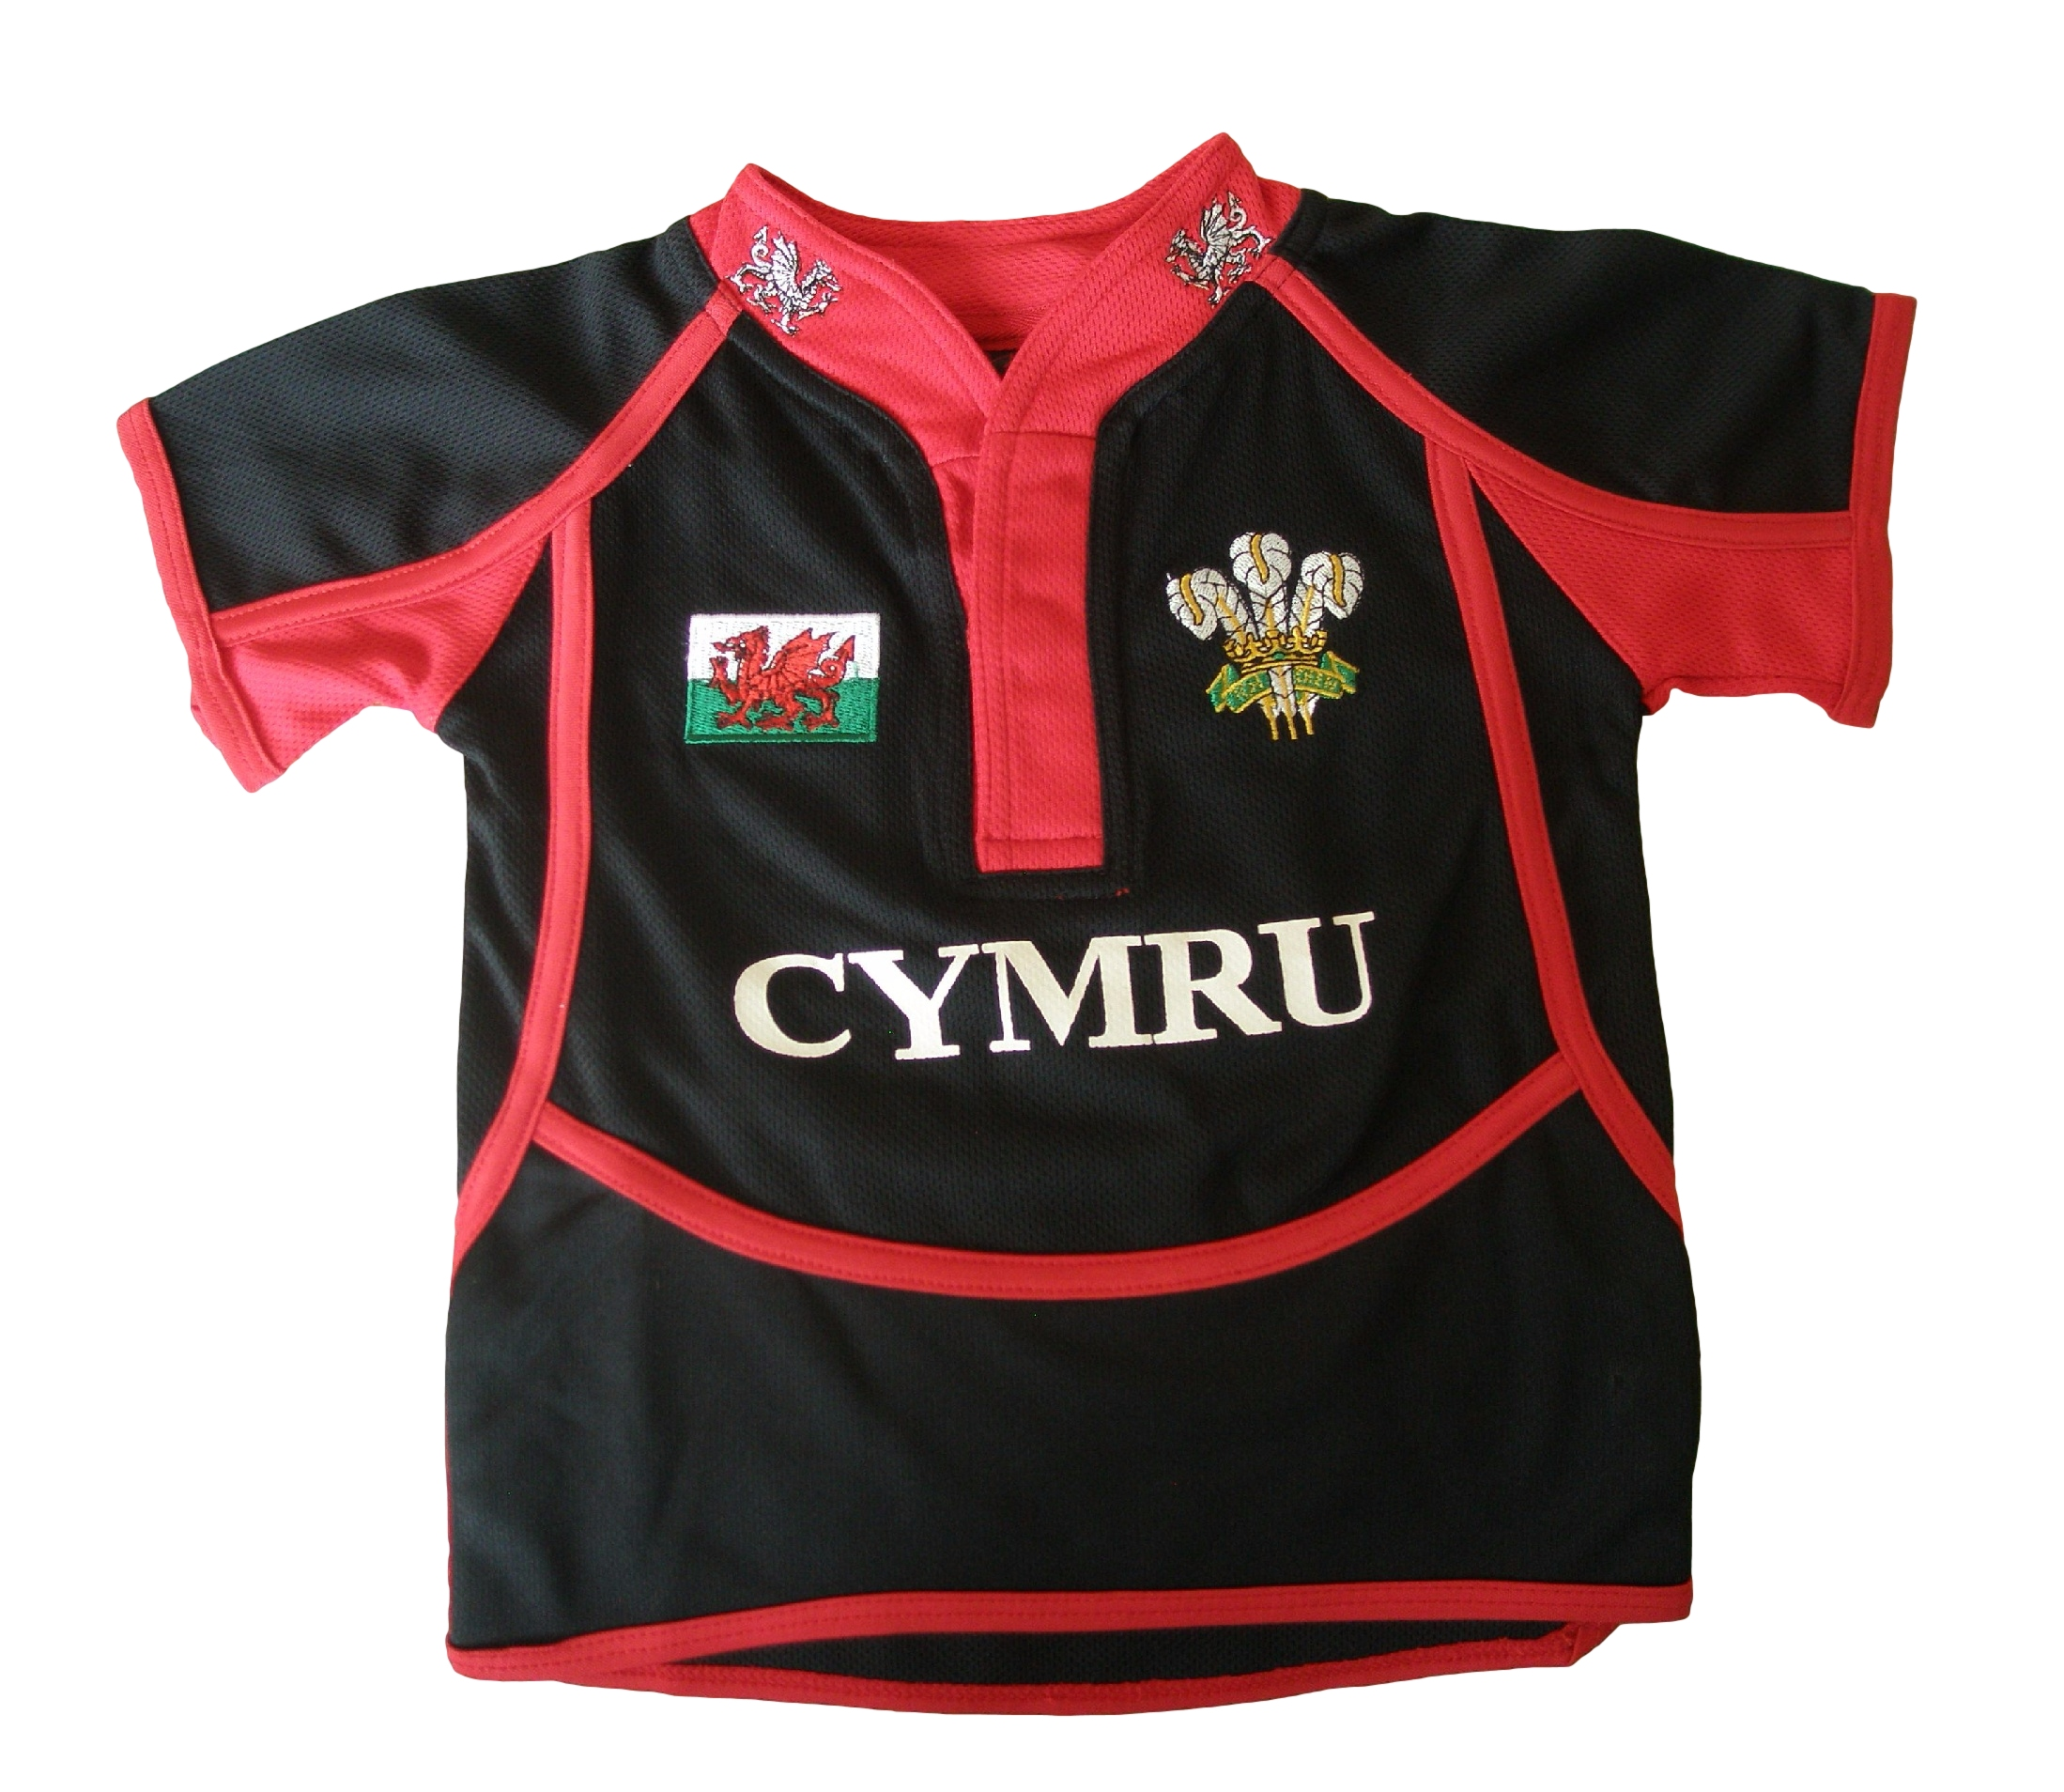 New Cooldry Welsh Rugby Shirt